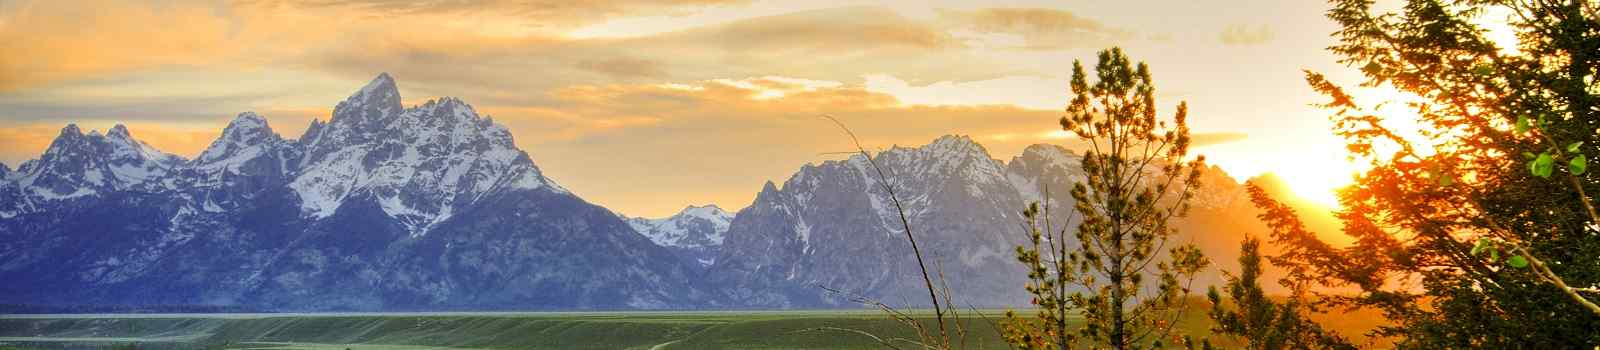 HERRLICHE-NATIONALP -Grand Teton National Park shutterstock 66420136